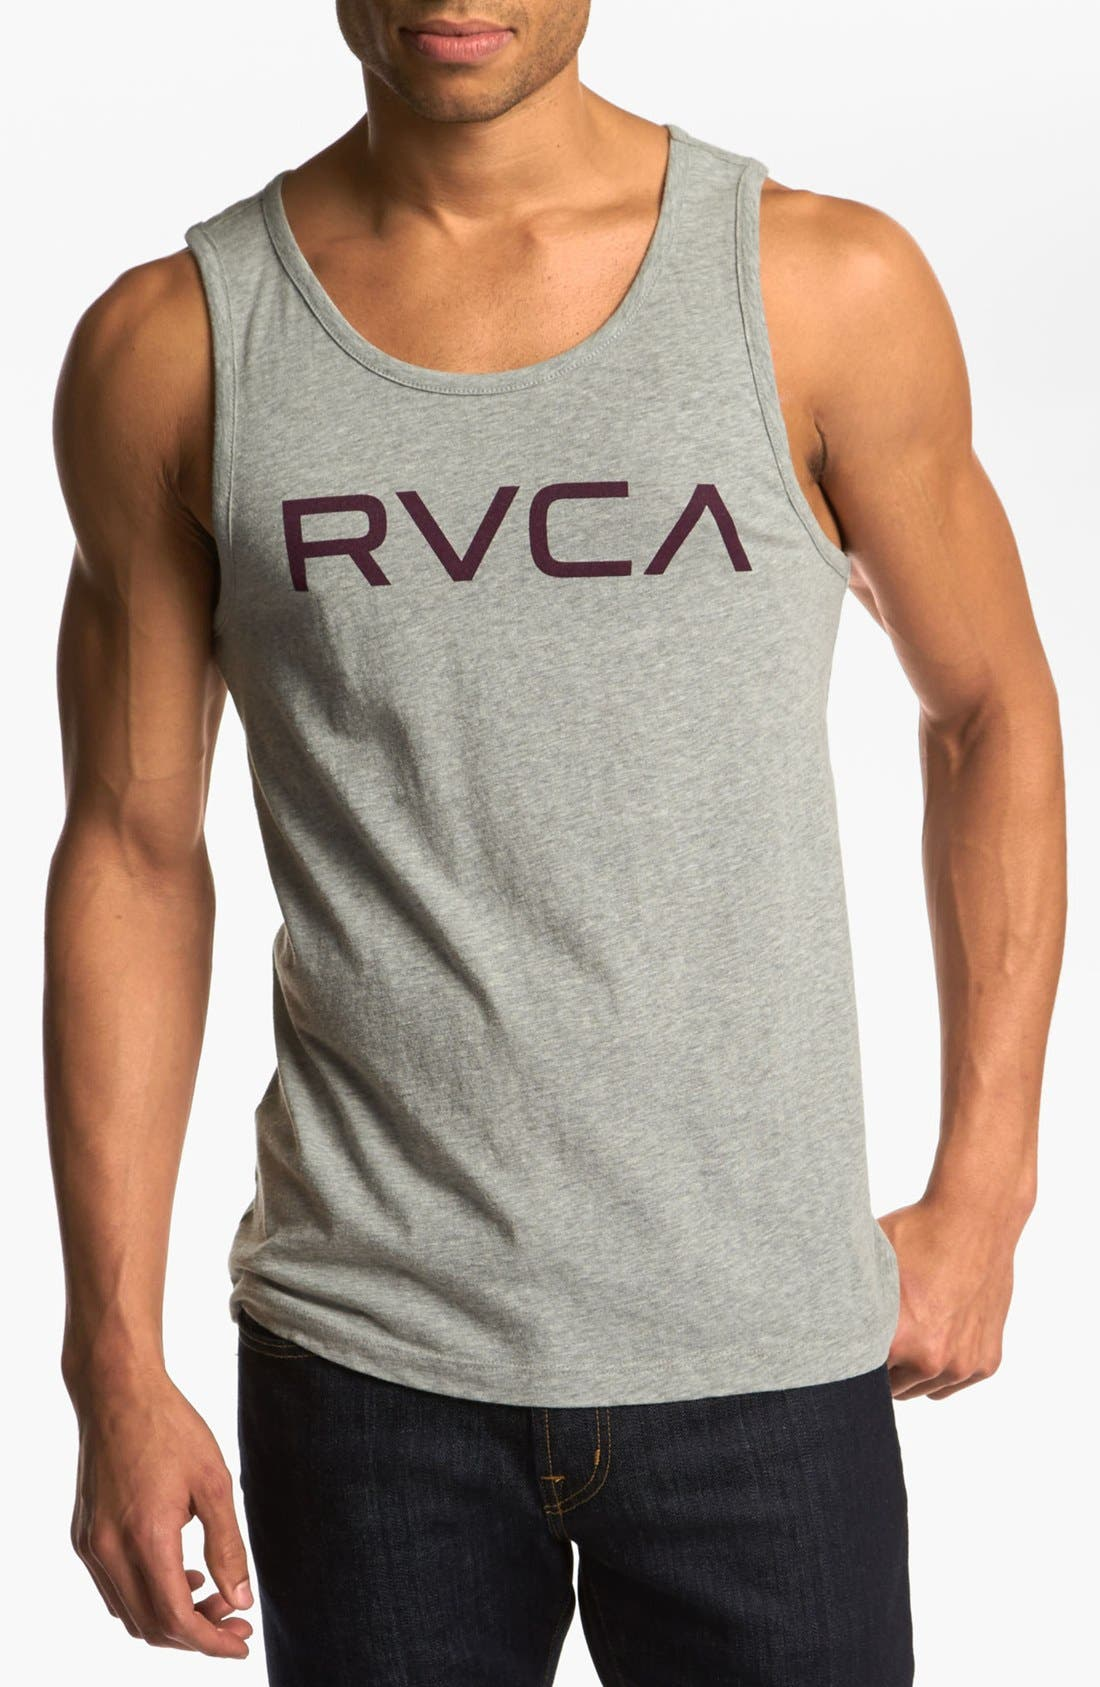 Alternate Image 1 Selected - RVCA 'Big' Tank Top